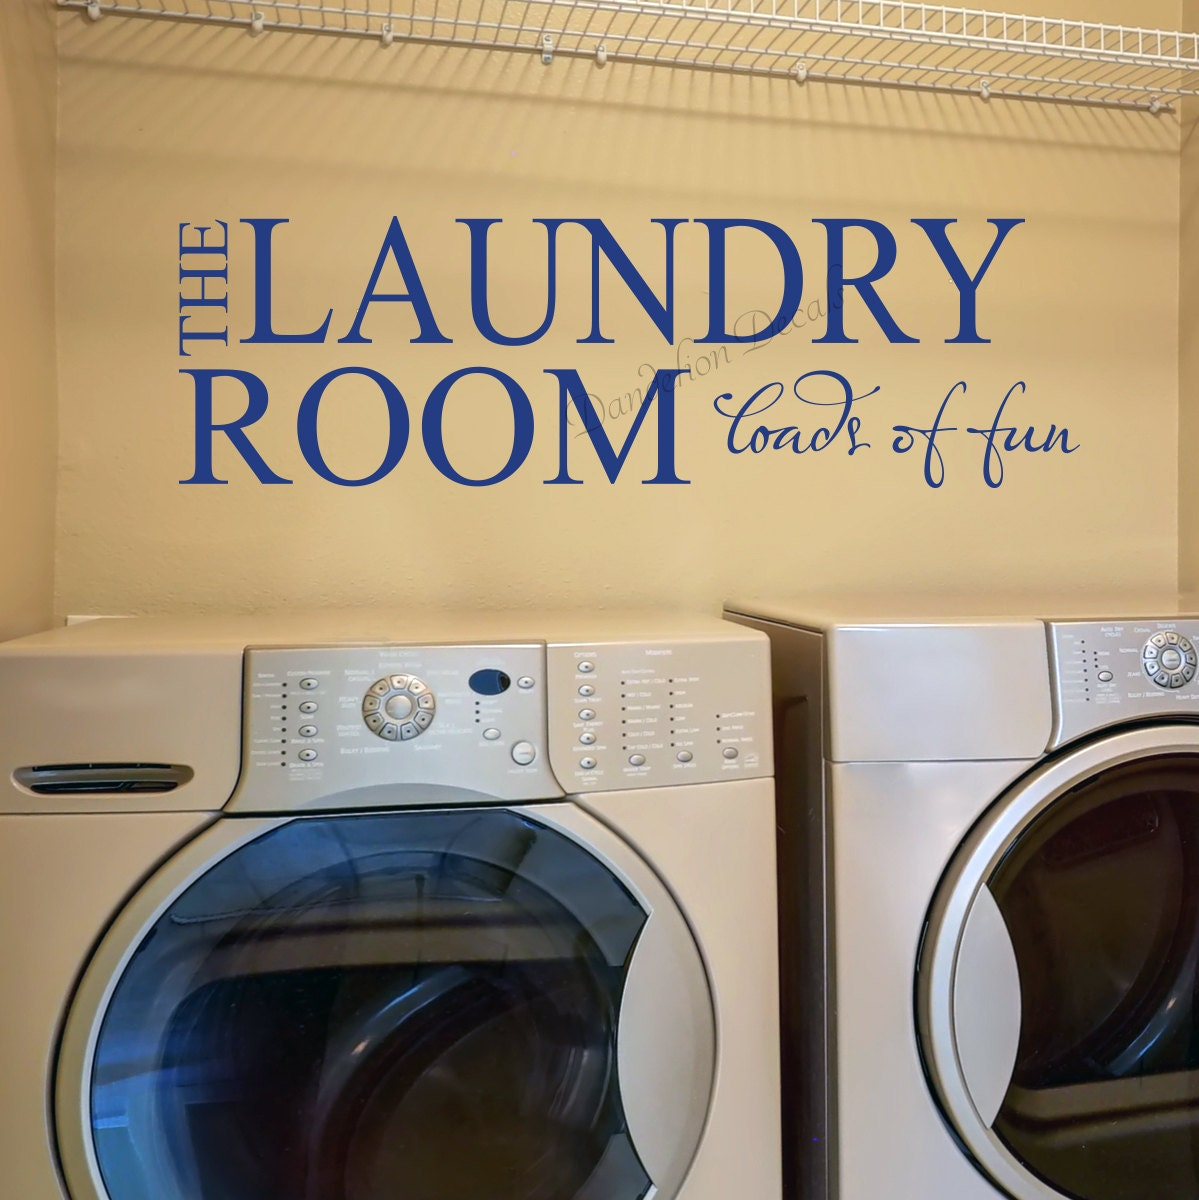 Laundry Room Removable Wall Sticker - Vinyl Lettering - The Laundry ...